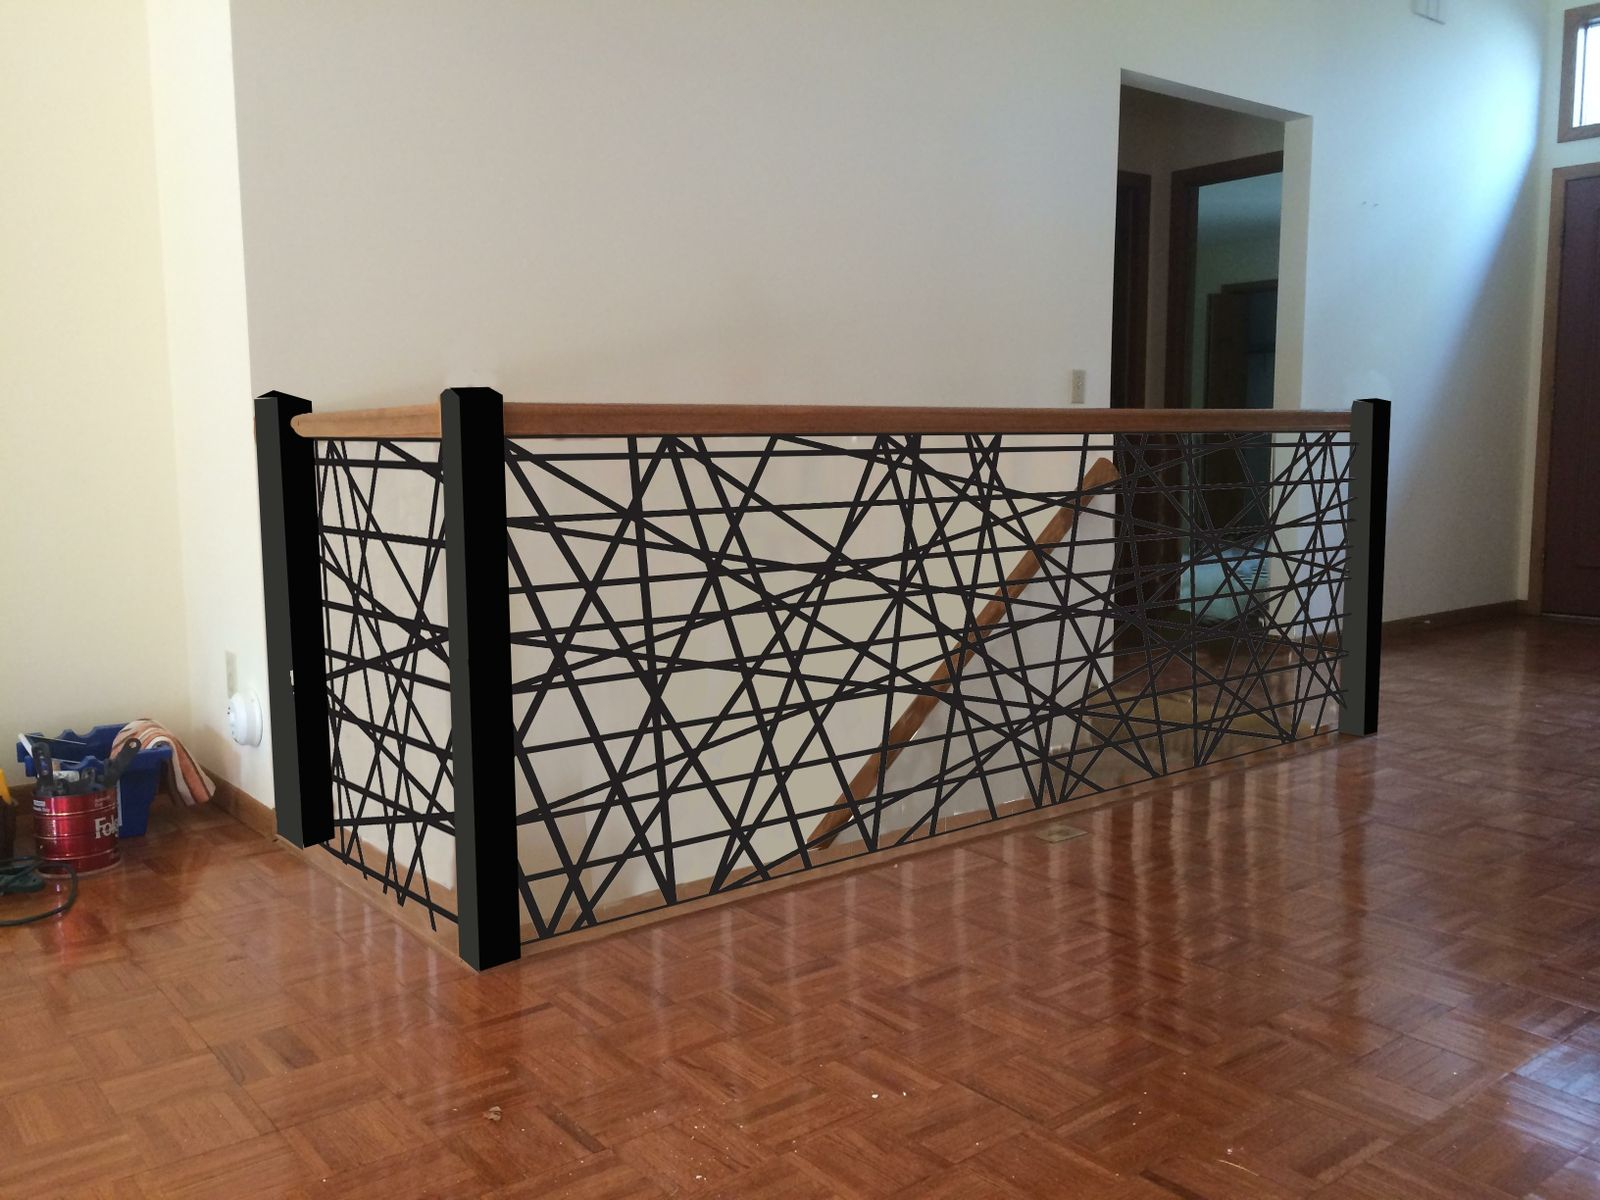 Design Metal Stair Railing handmade custom metal stair railings by aesthetic metals inc made railings